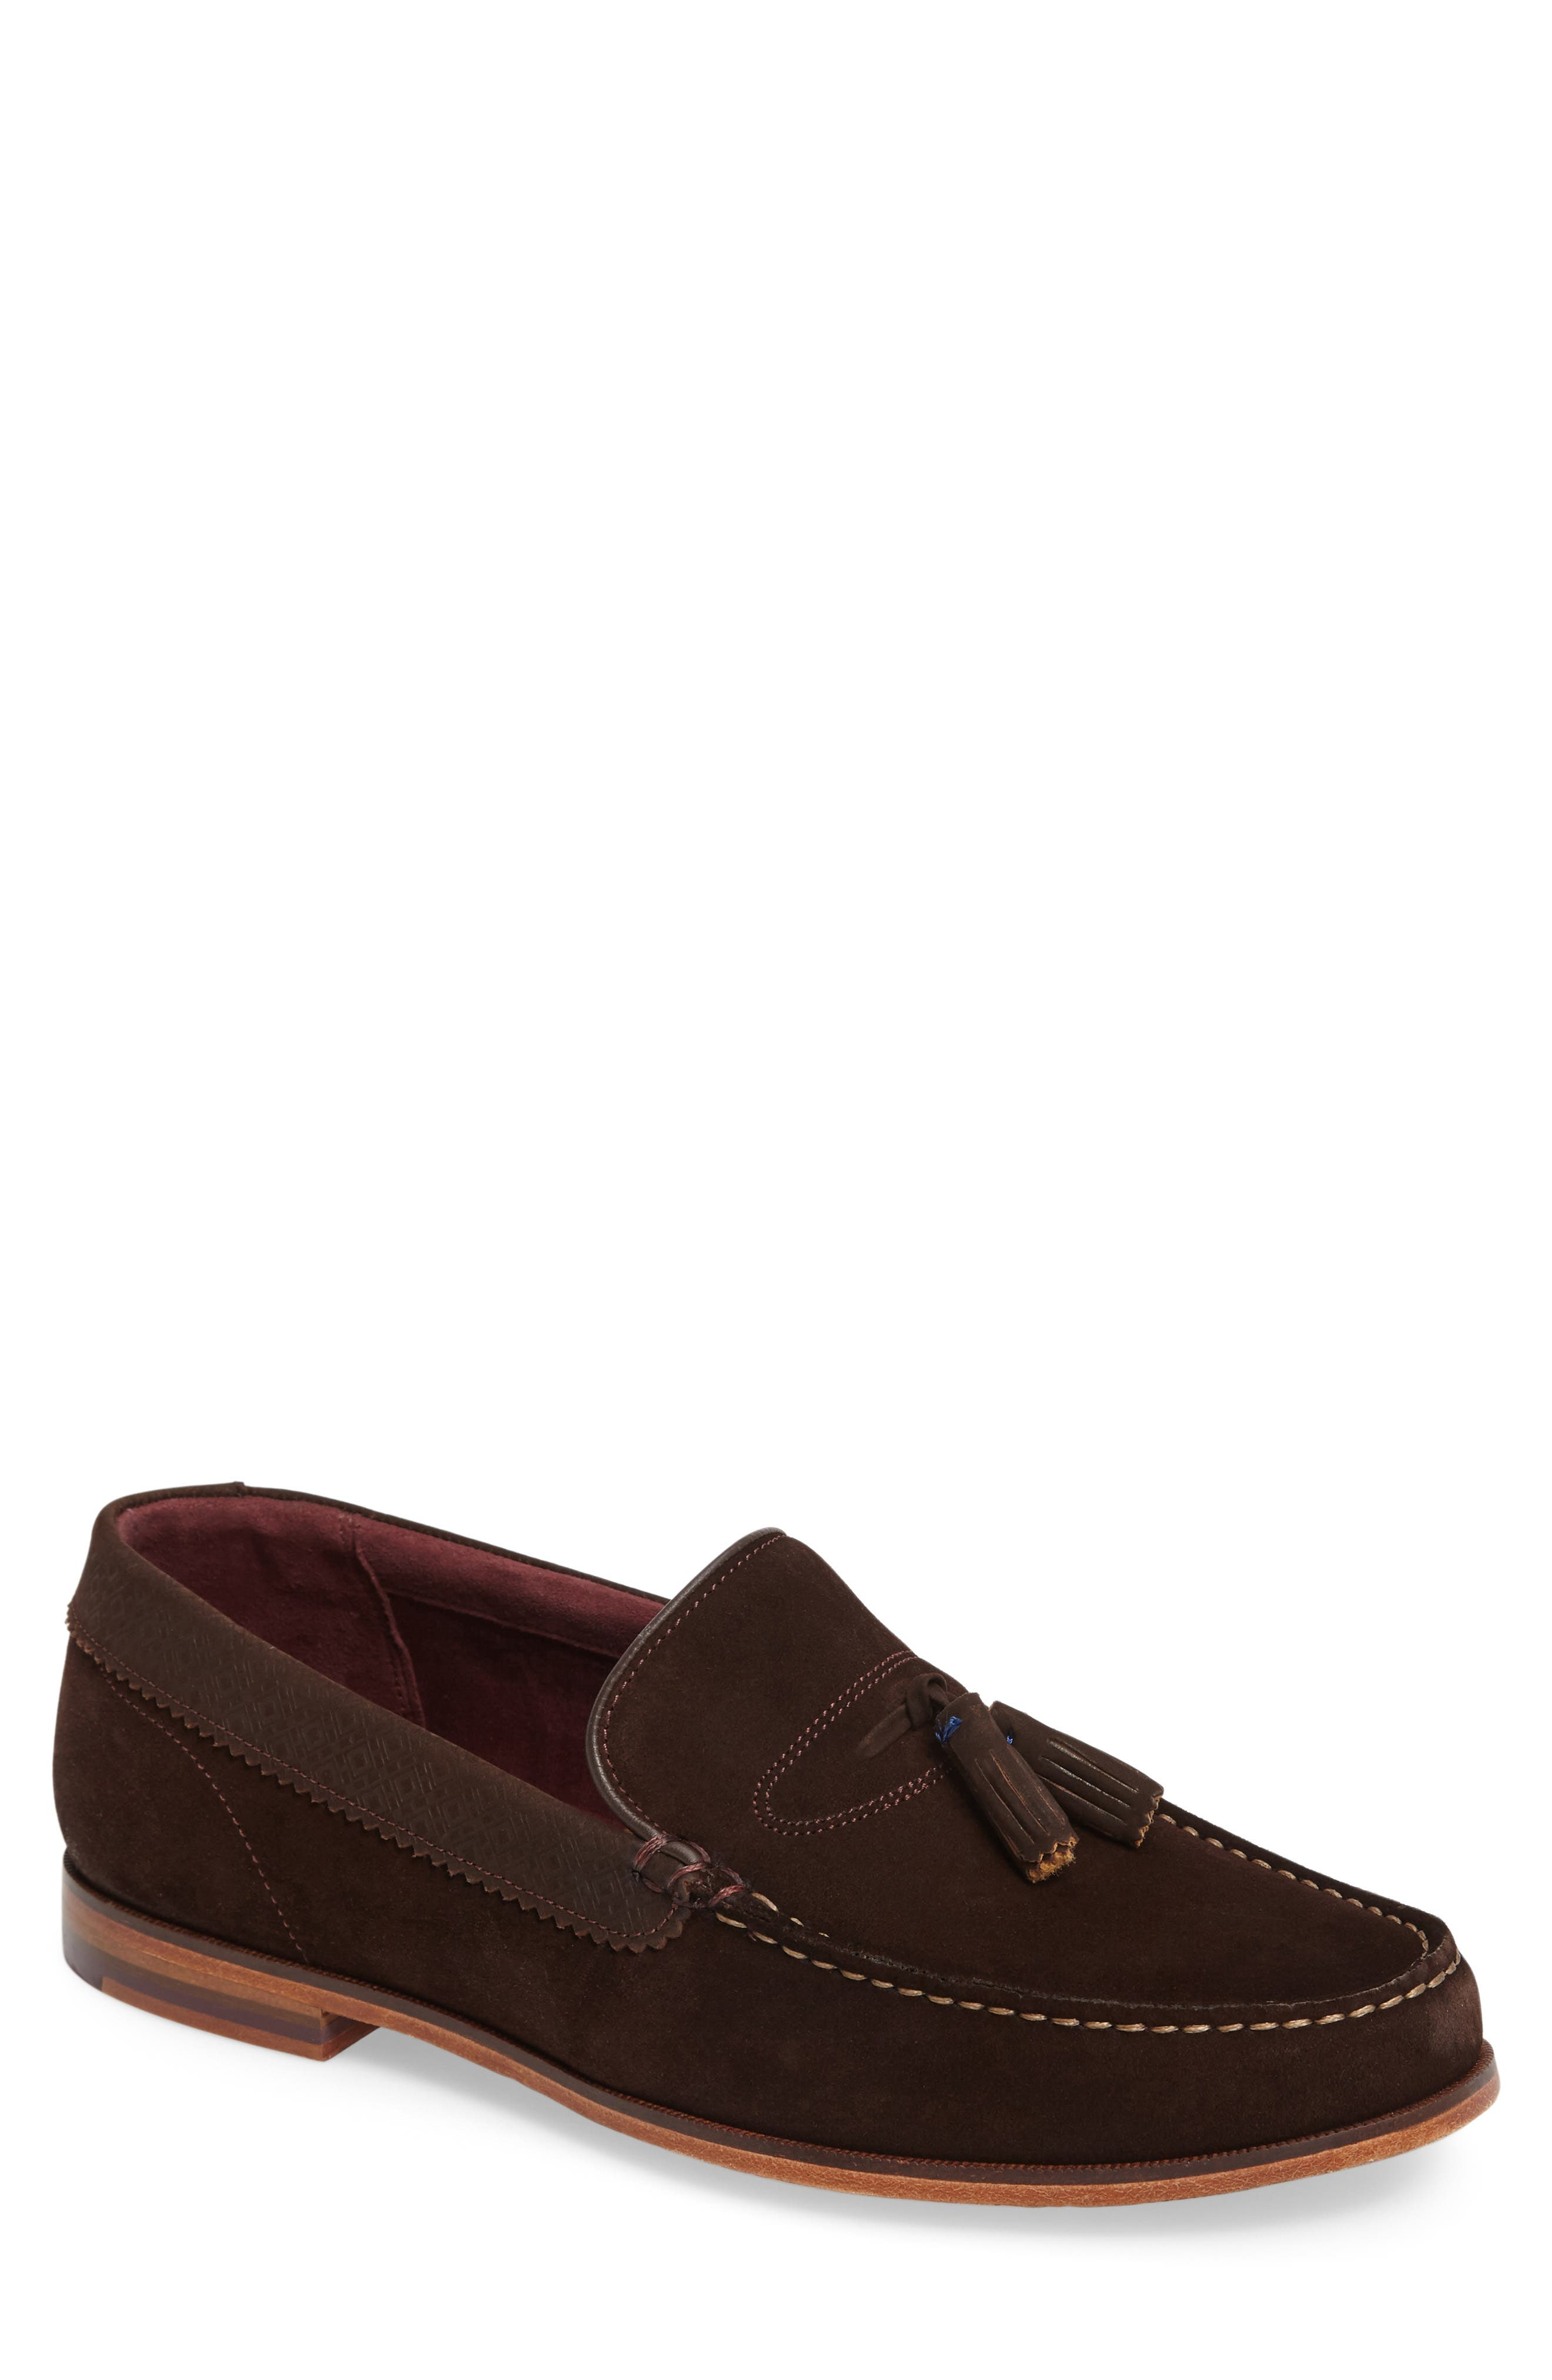 Dougge Tassel Loafer,                         Main,                         color, Brown Suede